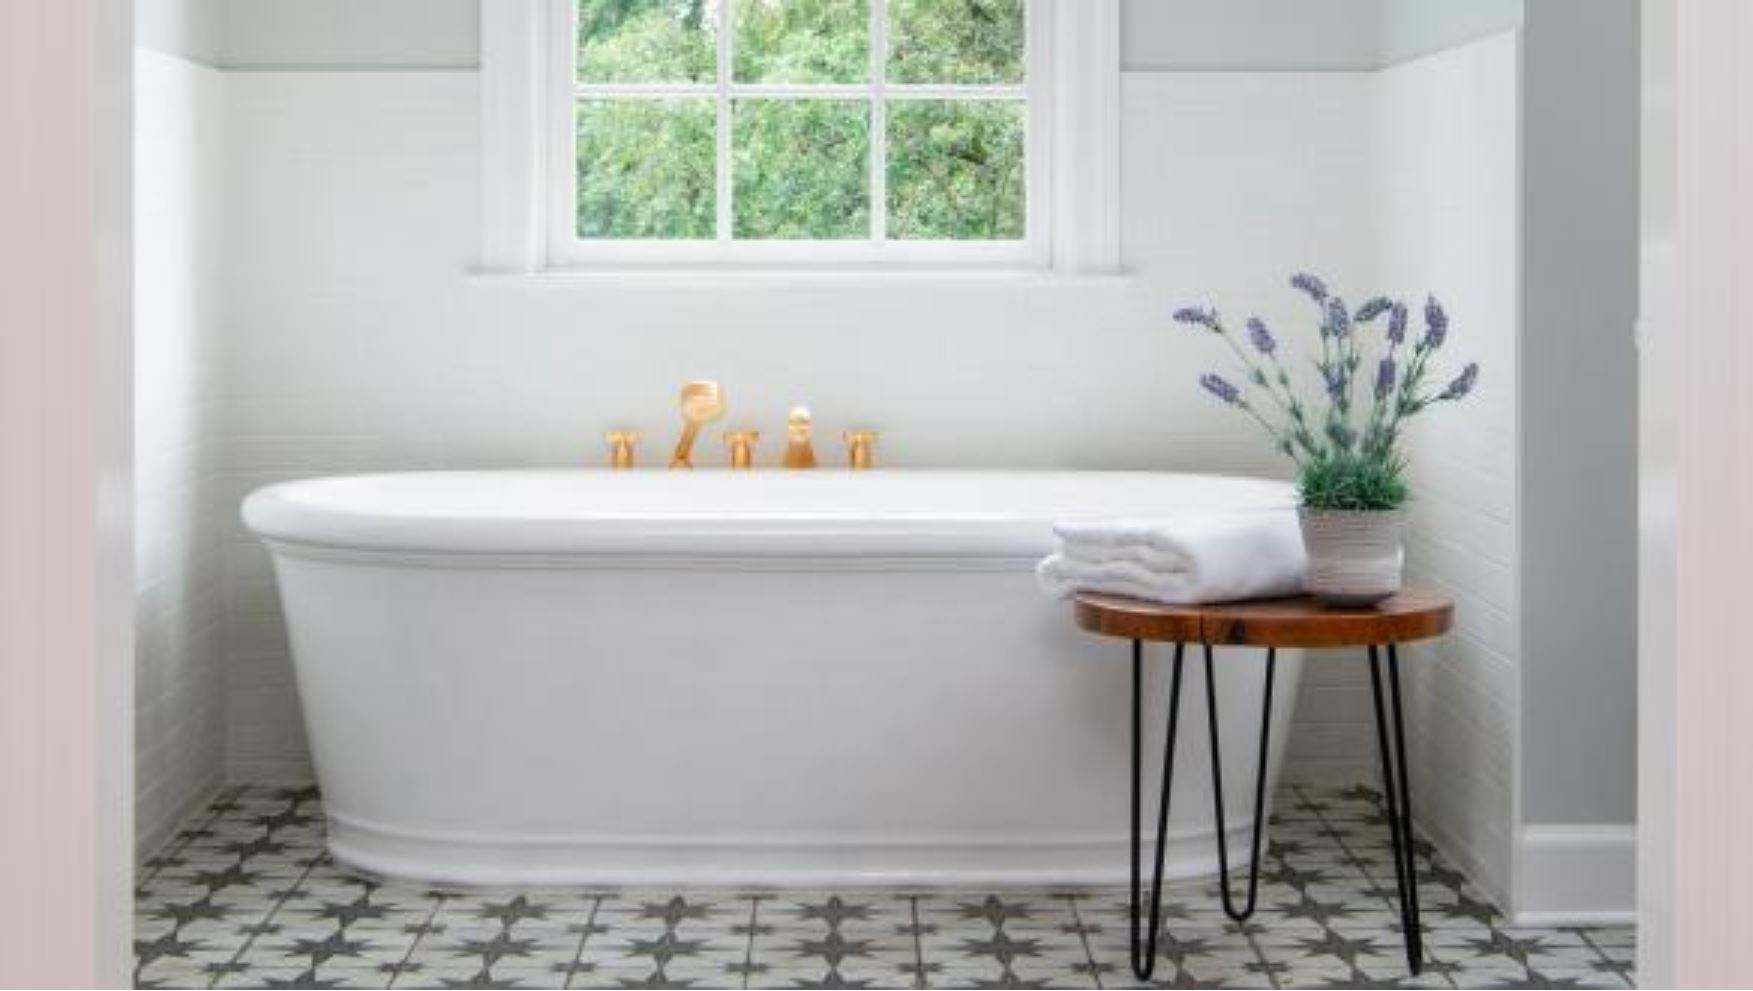 NAR Realtor Magazine 2020 01 09 What's trending a dozen home and design ideas for 2020 Hoey Team eXp Realty